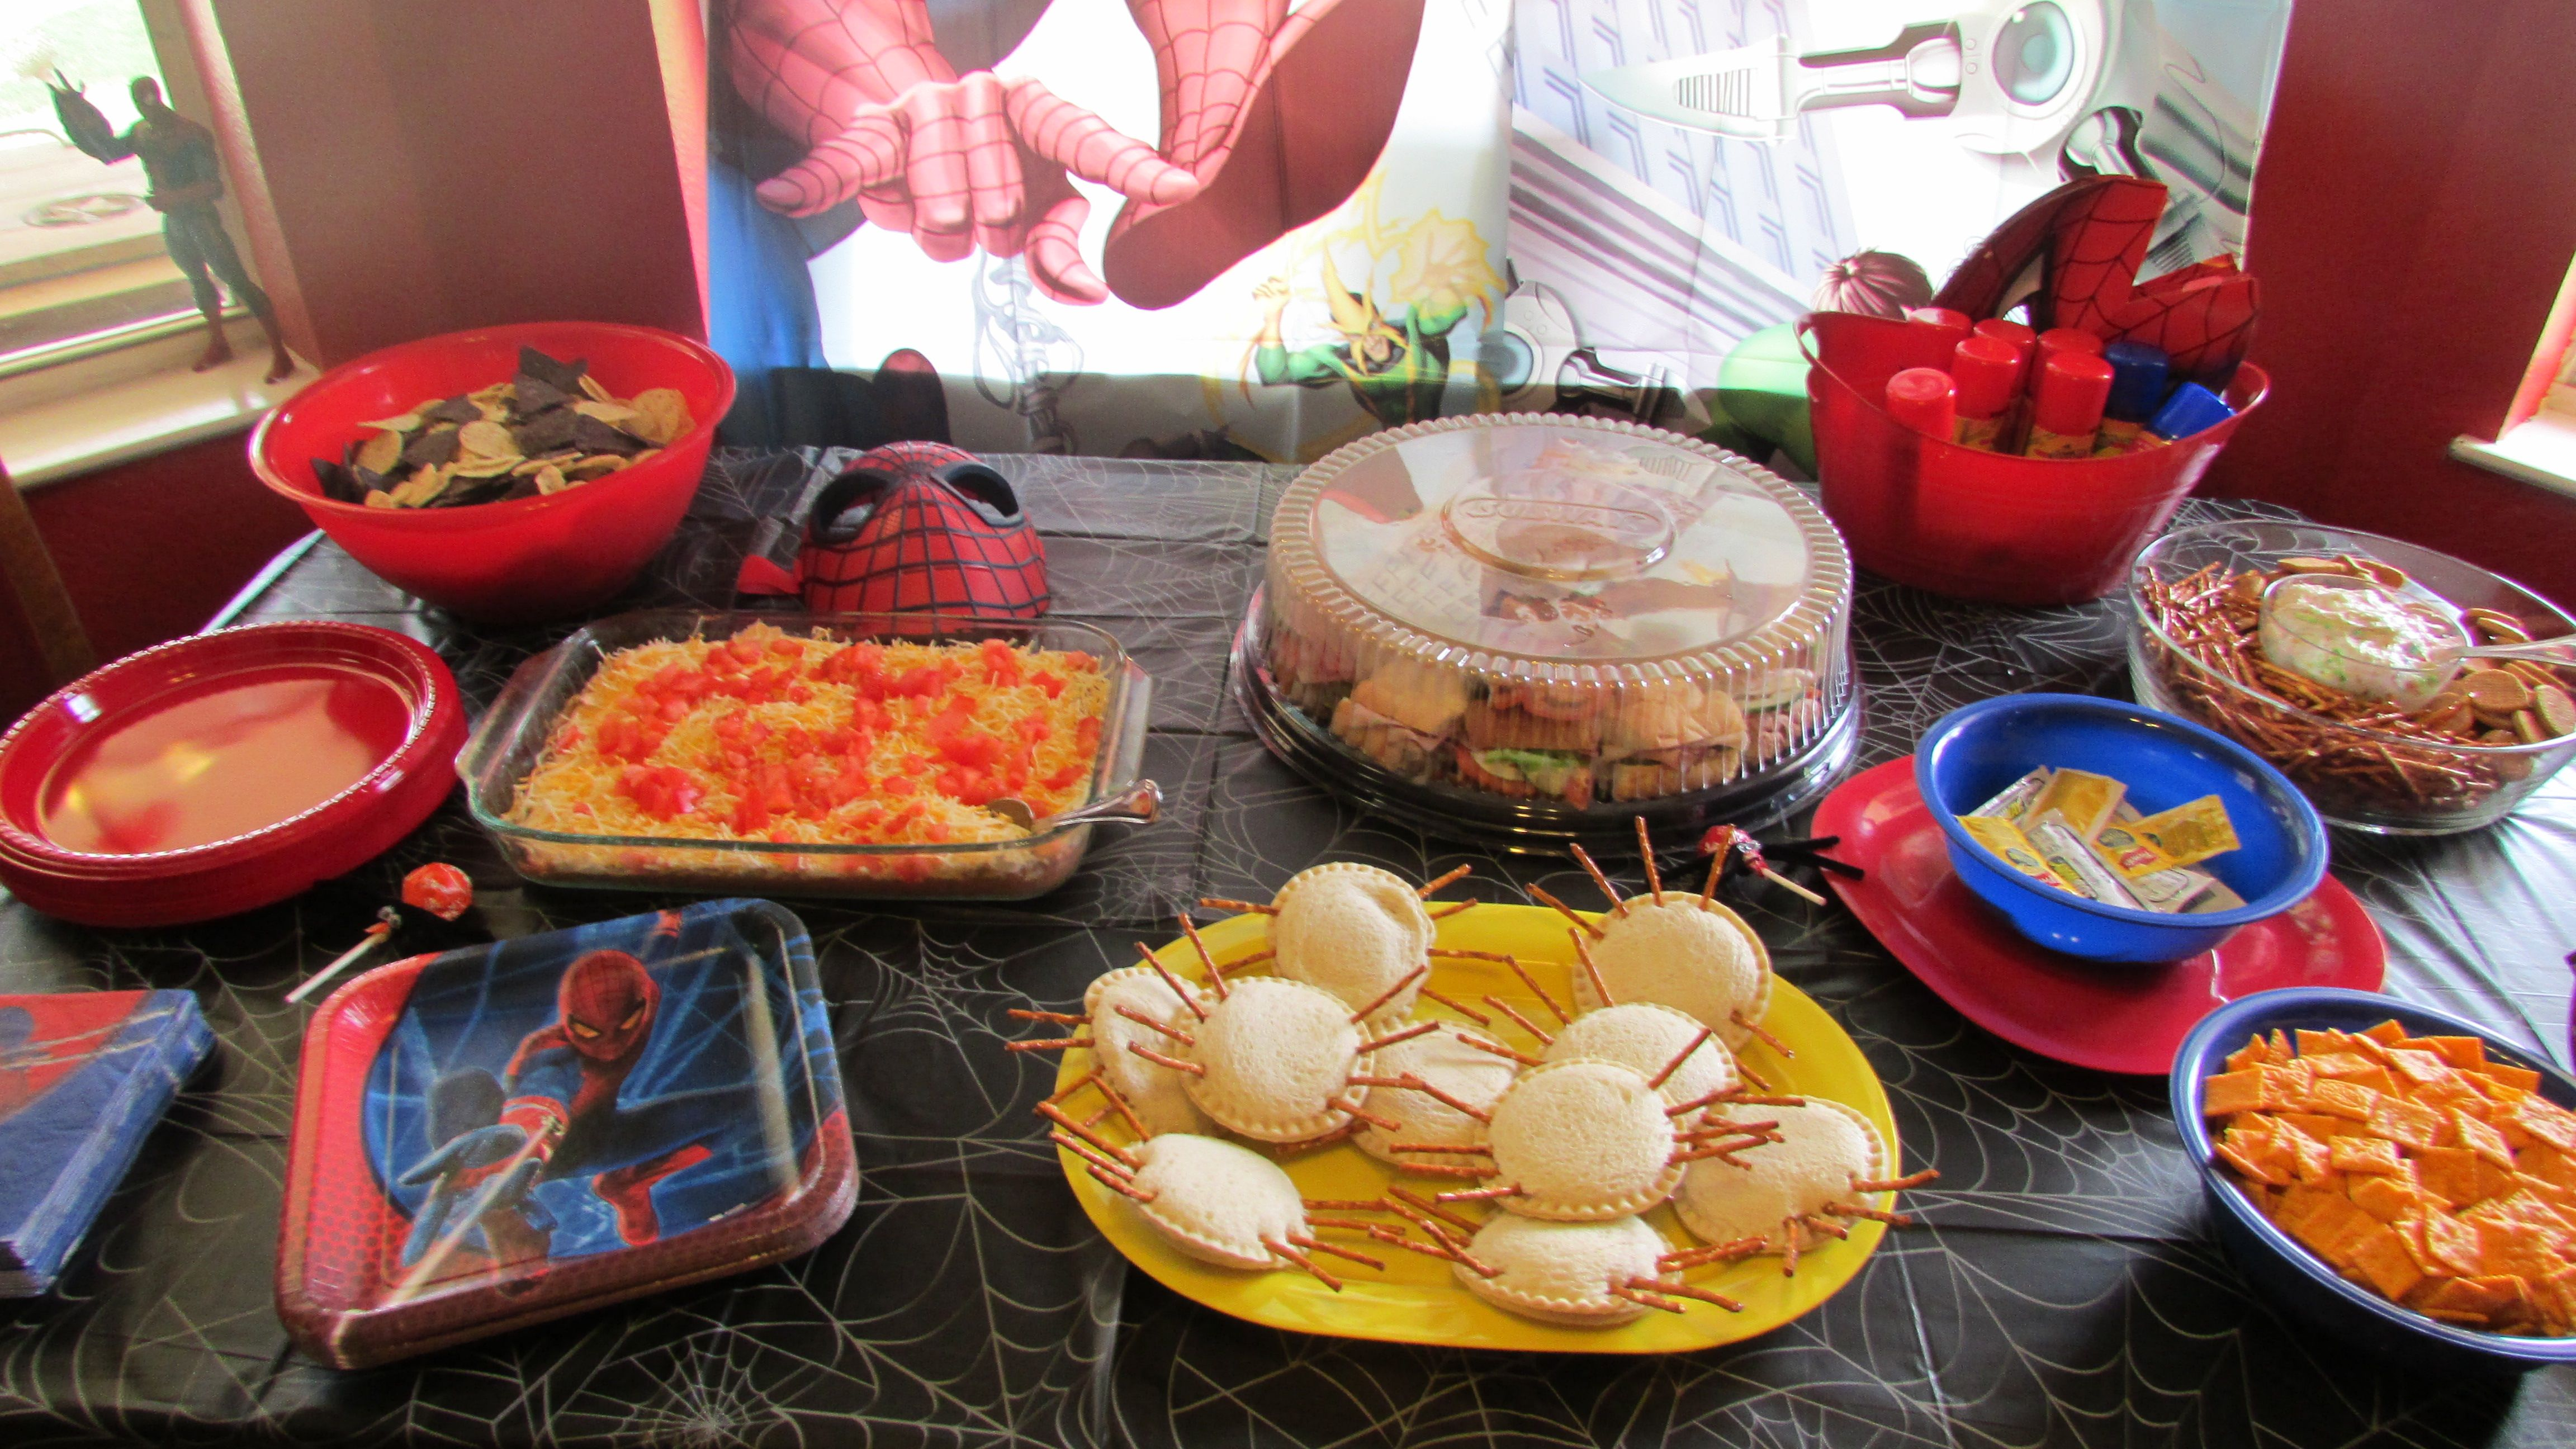 Party Food for spider man party Spider sandwhiches made with